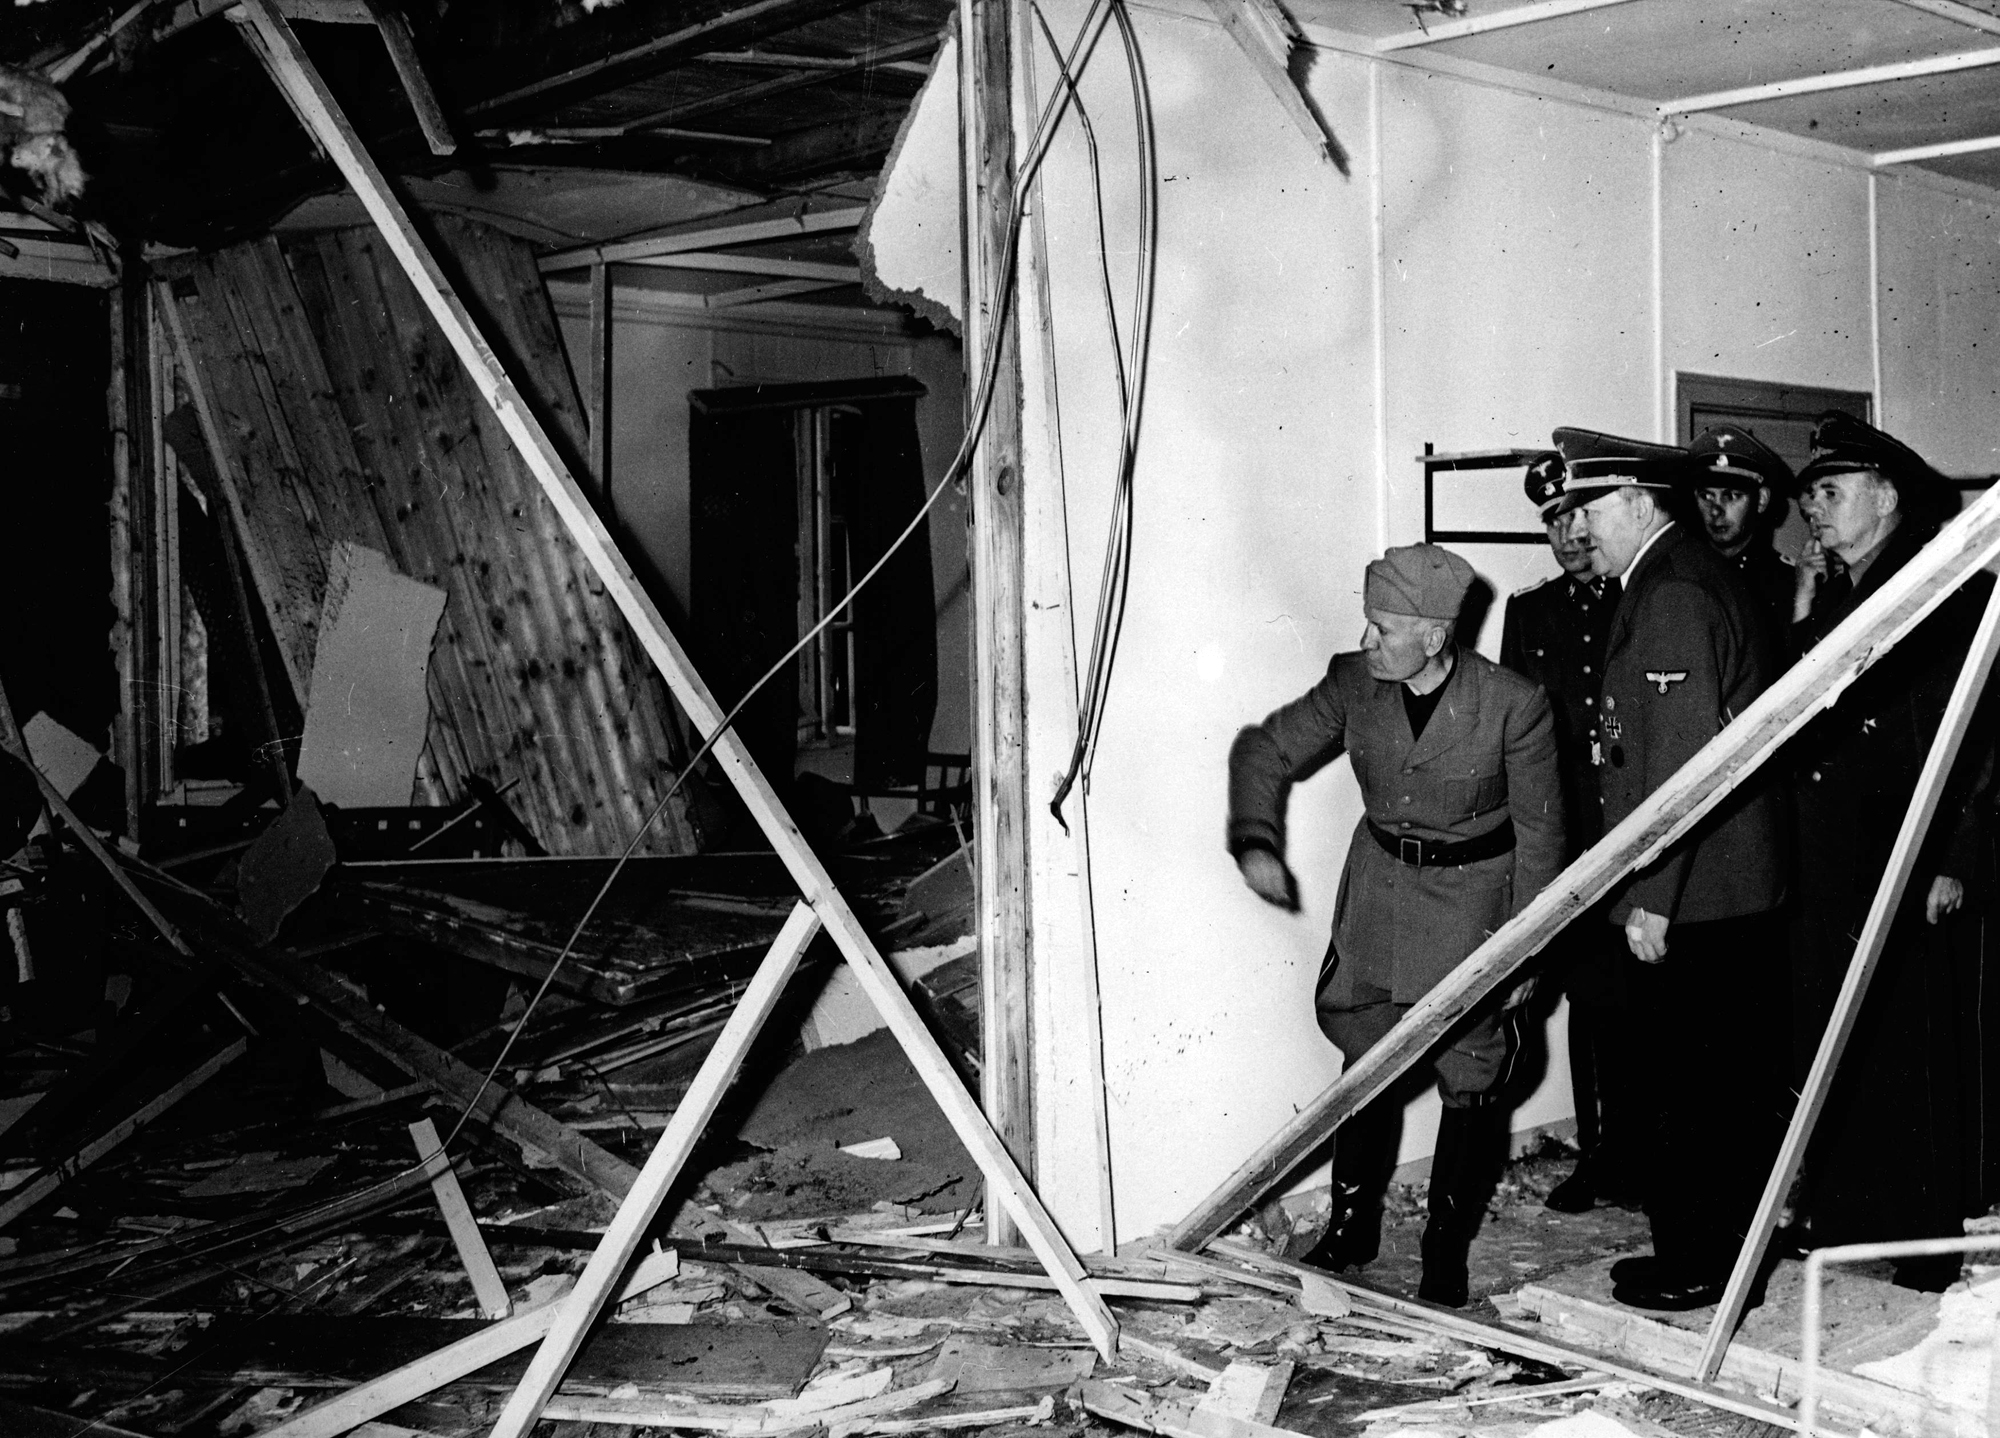 Mussolini and Hitler inspect the wreckage of the conference room